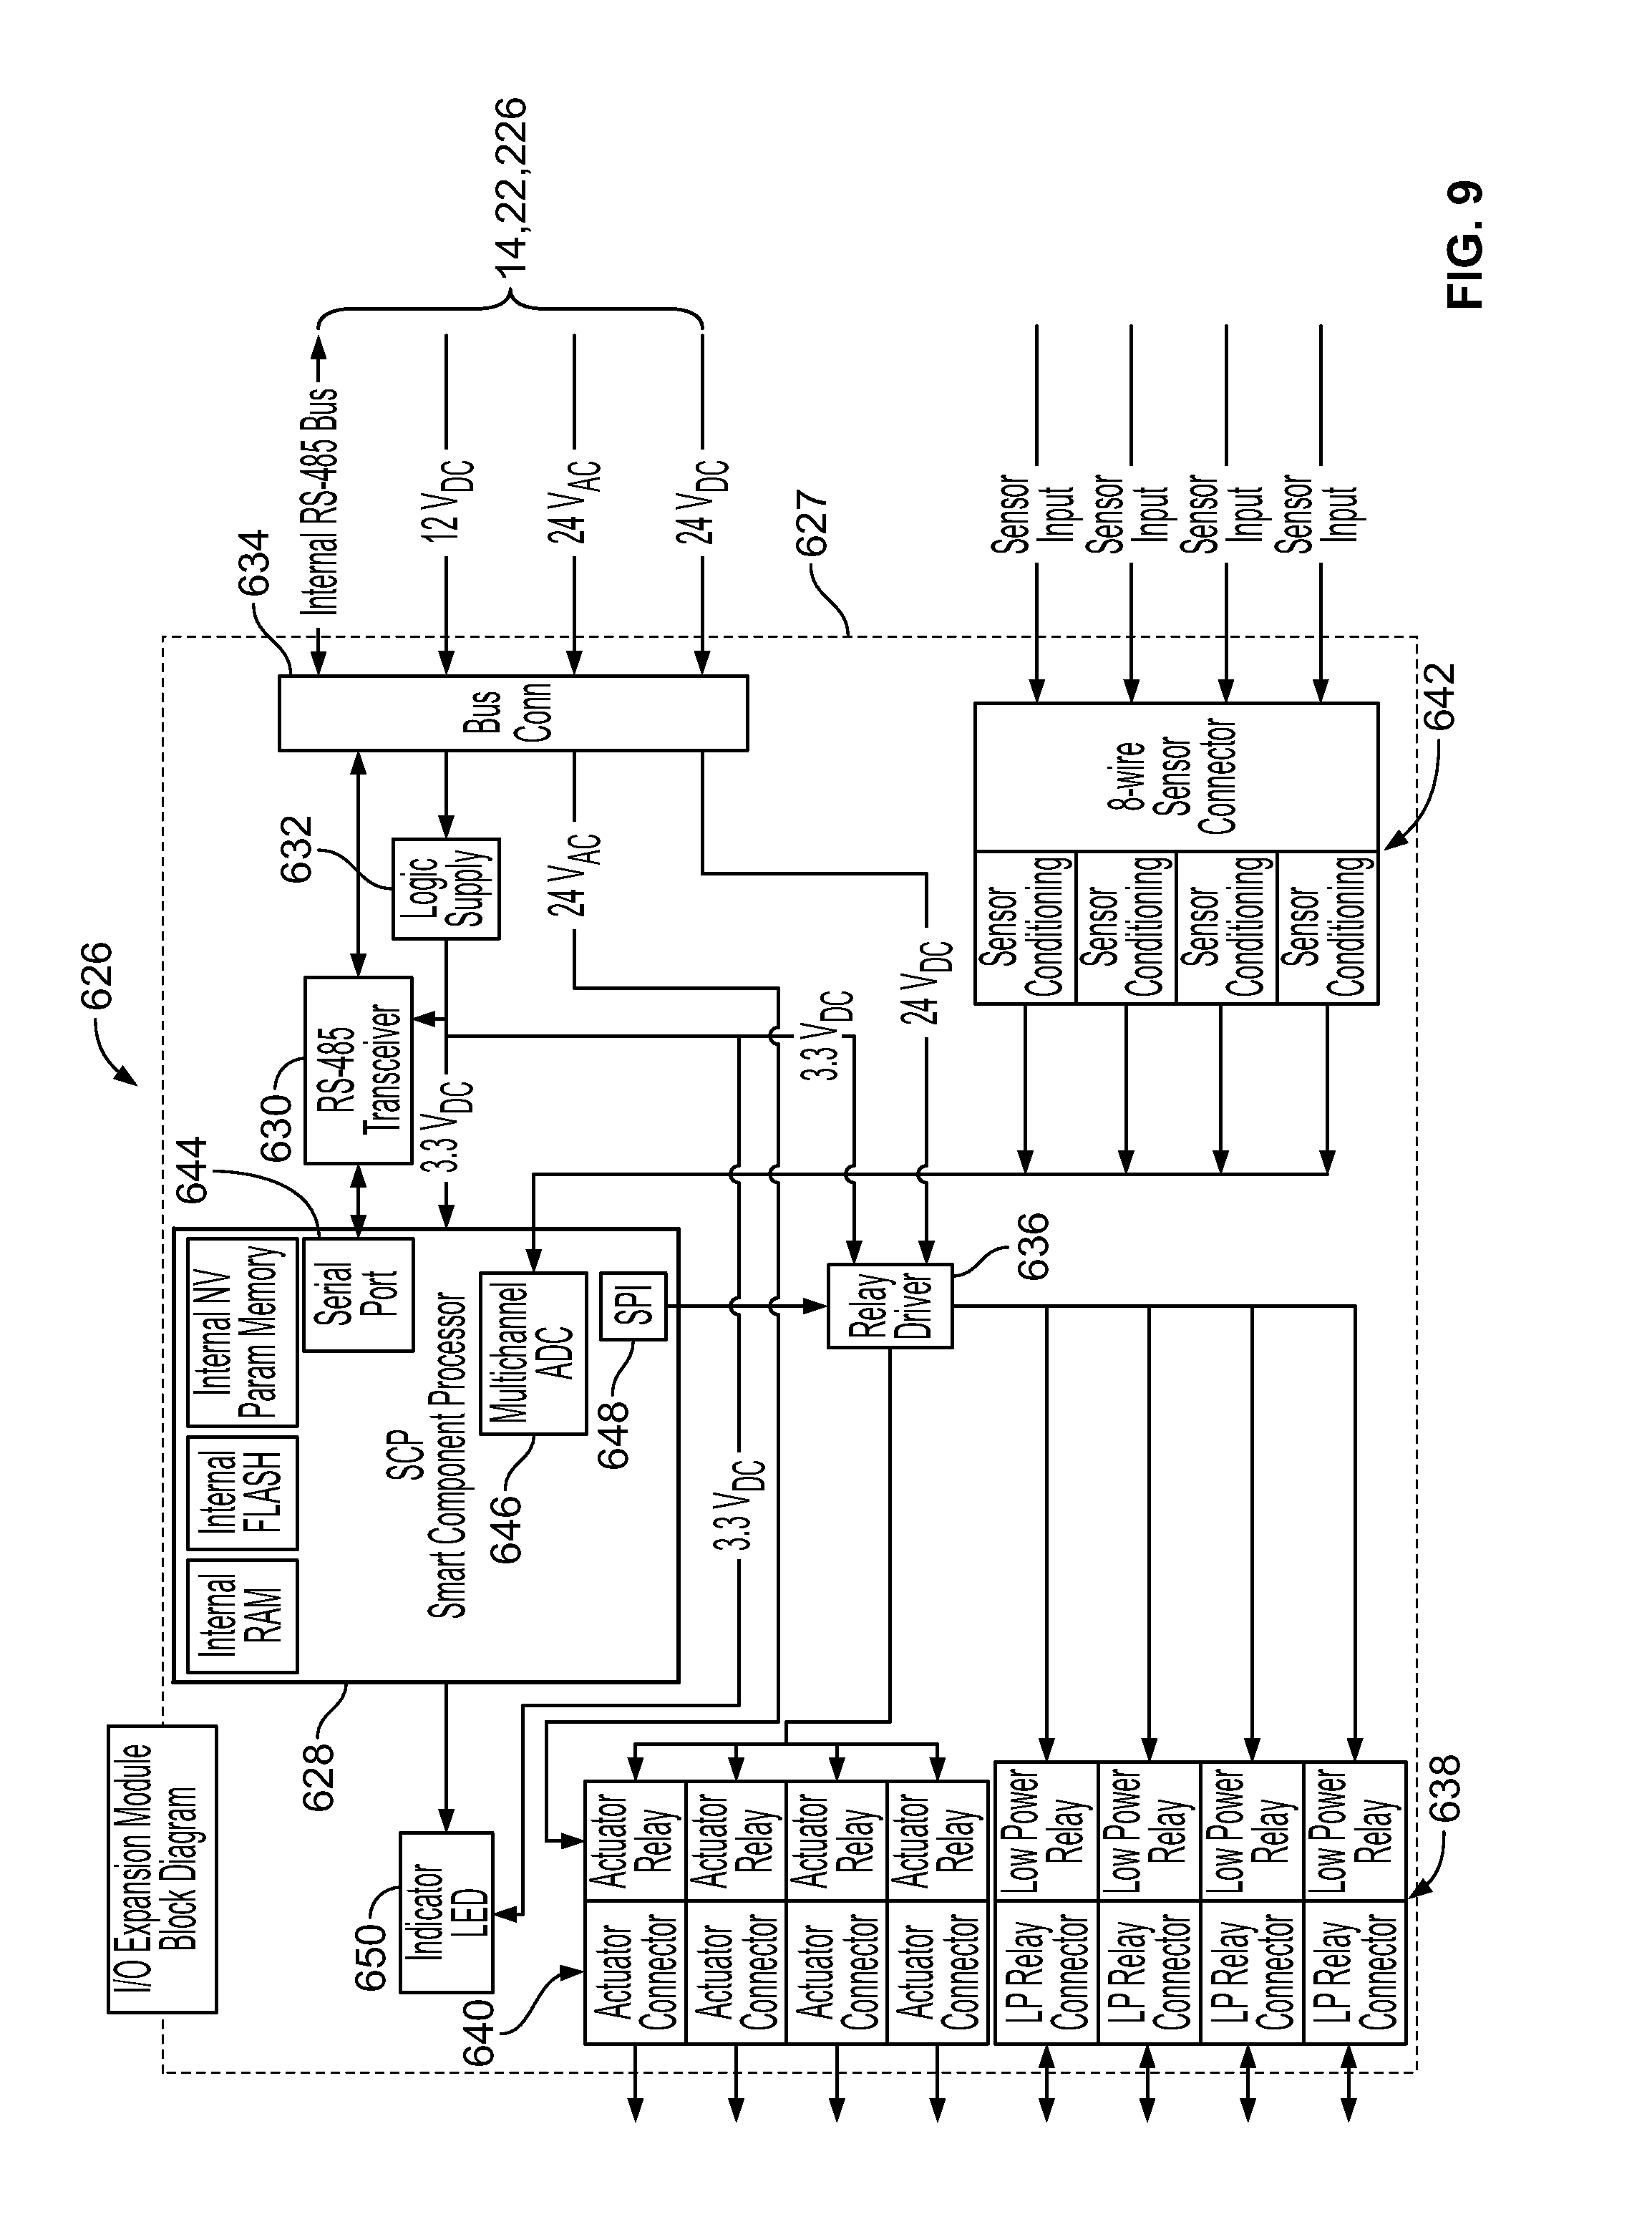 Hayward Pro Logic Wiring Diagram